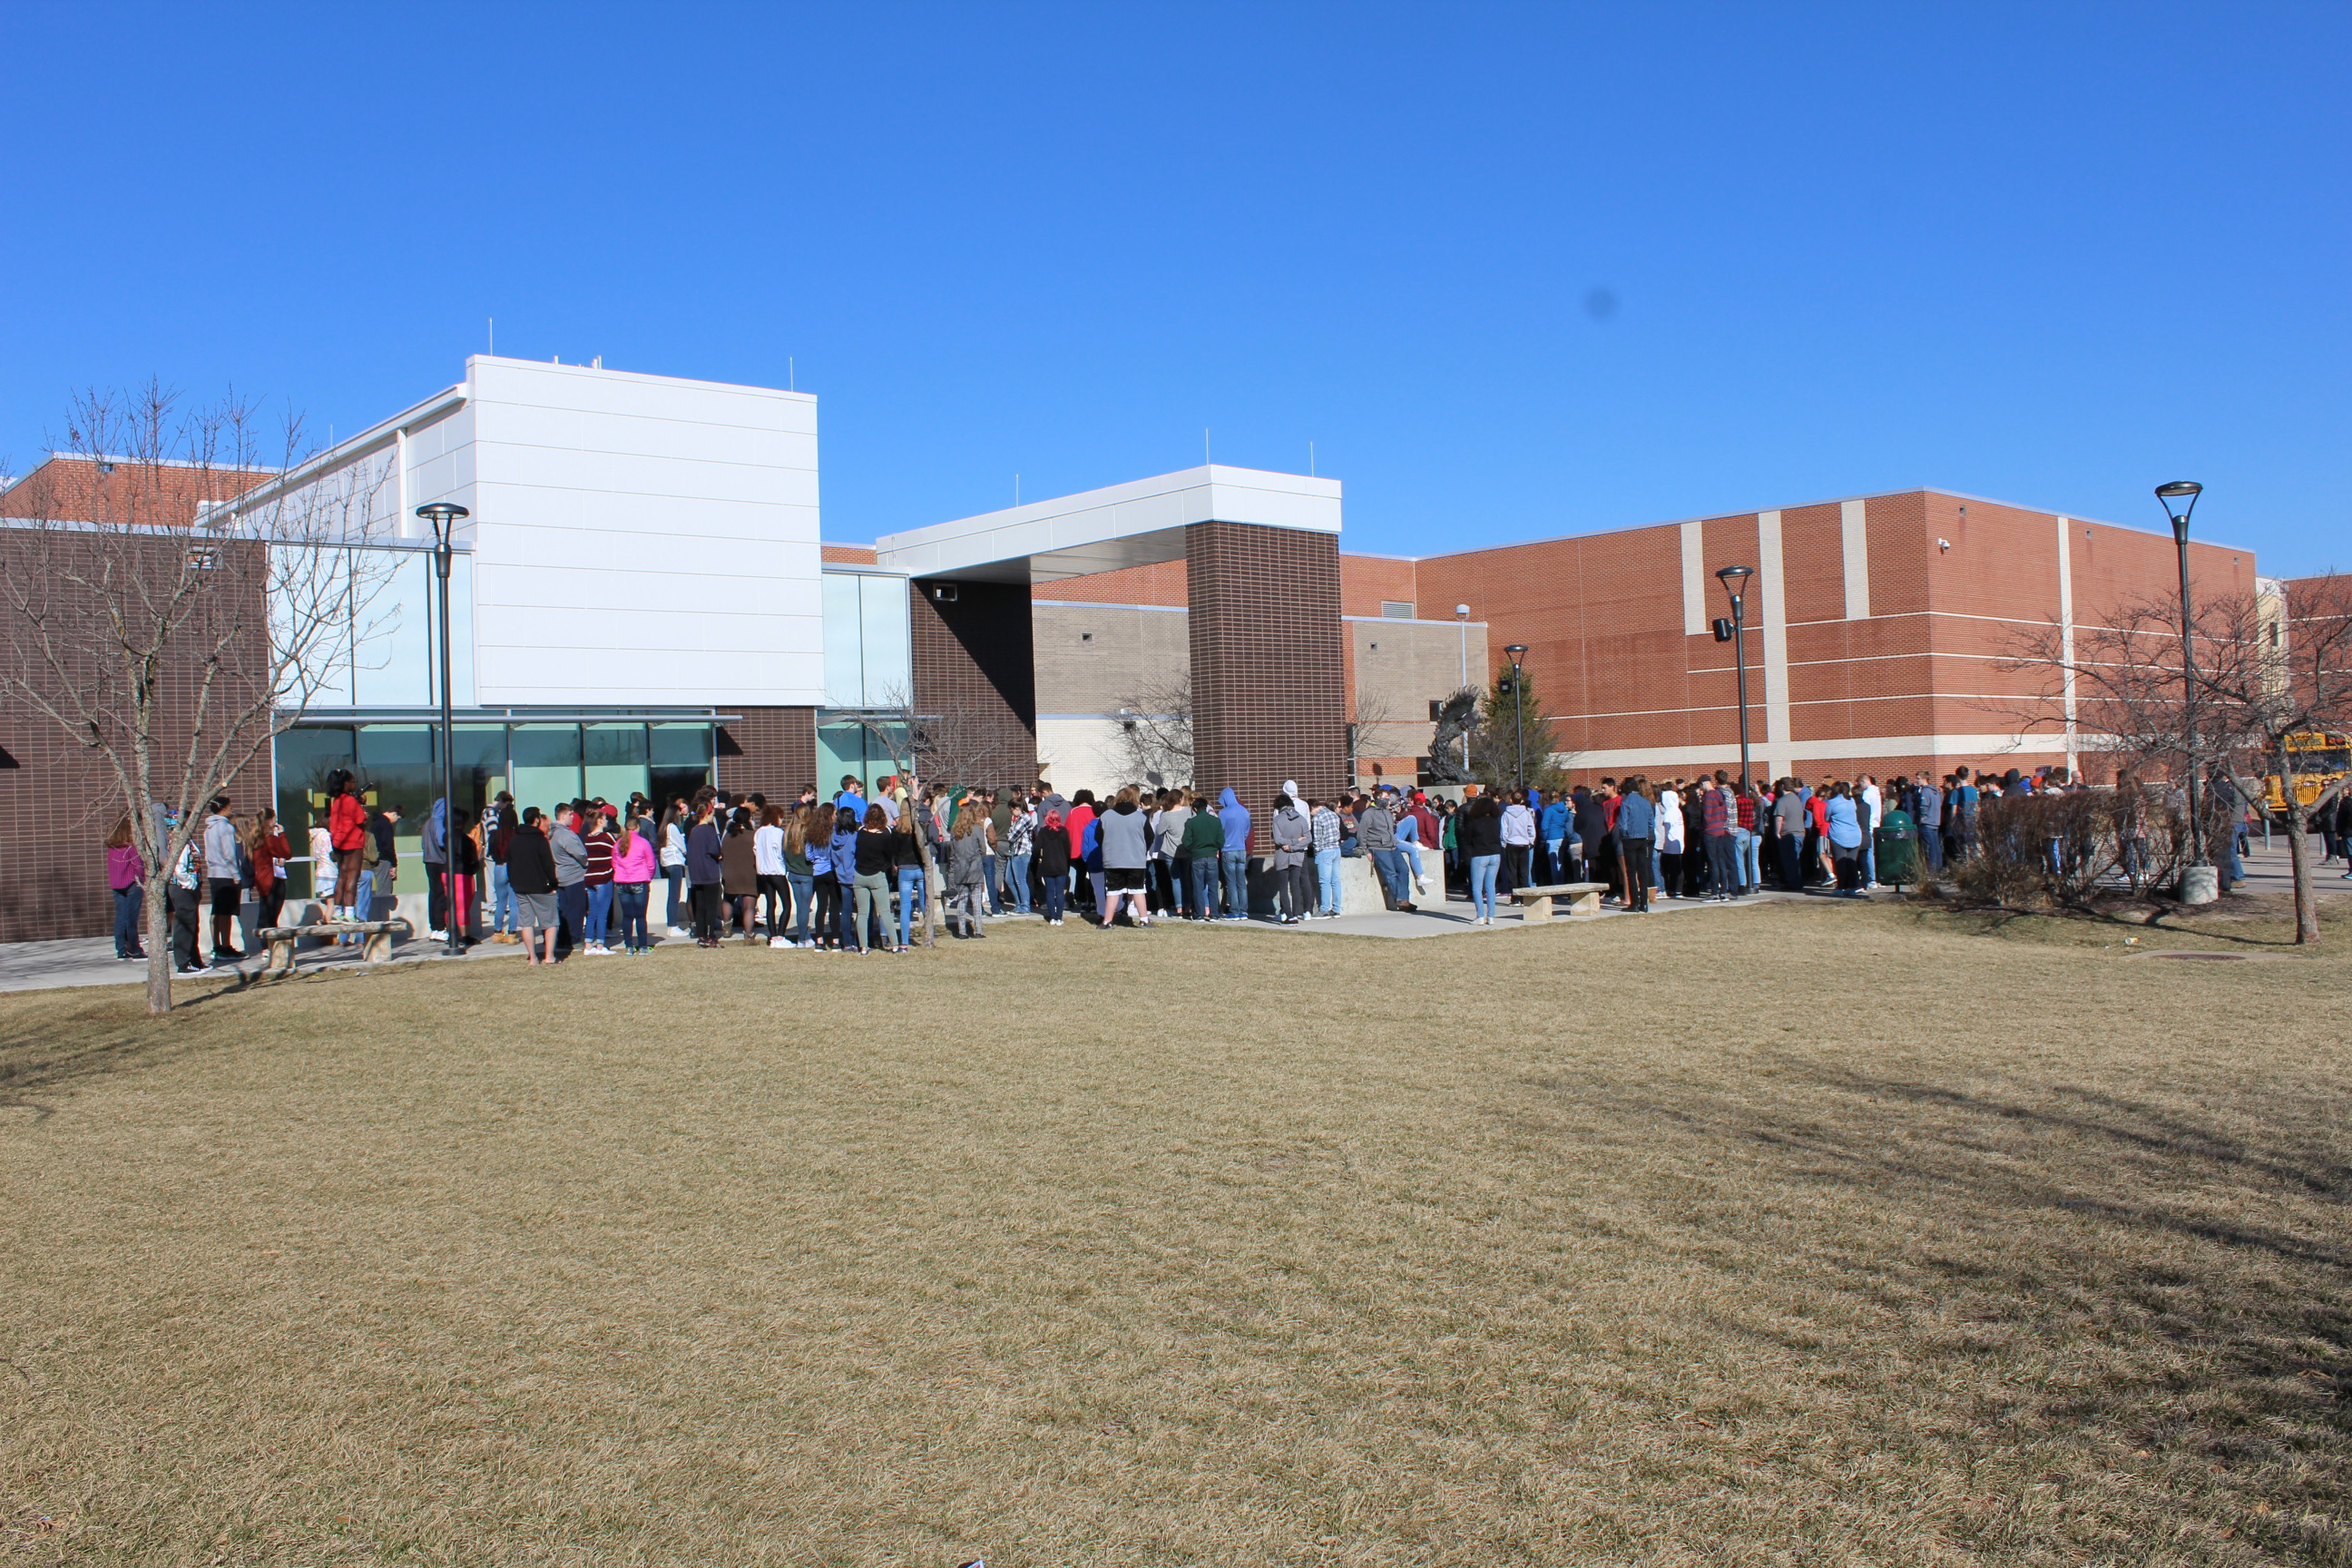 Students at Free State High School in Lawrence walked out of class Wednesday morning as part of a nationwide protest against gun violence. (Photo by J. Schafer)